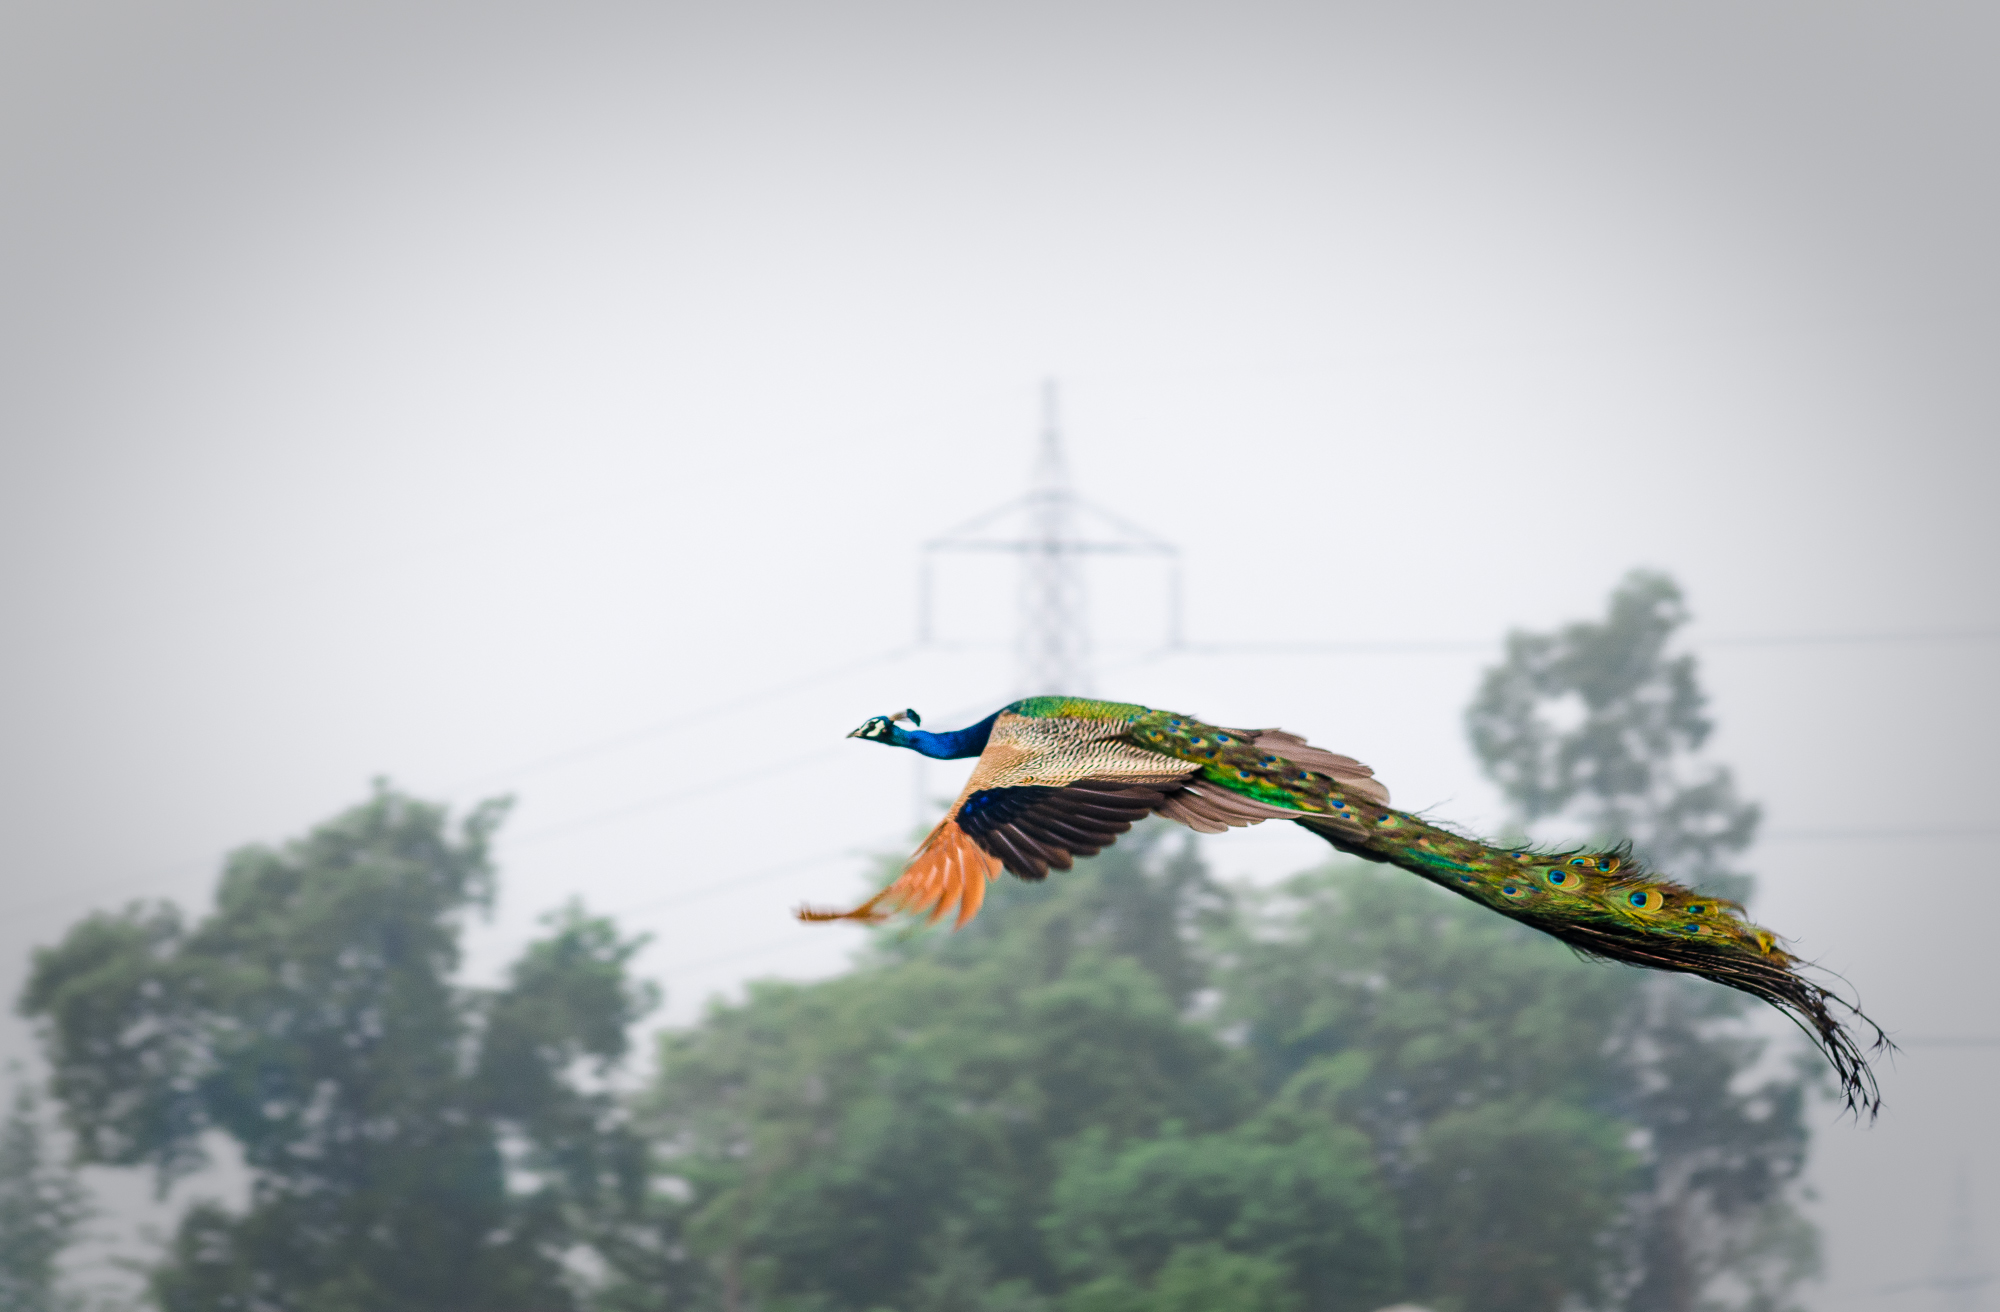 It was another oridanry overcast morning. I was out with a friend in the outskirts of Lucknow in search for photographic opportunities. But there wasn't much that one could find. On the way back at around 6:30AM, we spotted 3 peahens going into the fields, so we parked the car and jumped out with our might zooms attached and headed into the fields only to witnedd this peacock on a huge pile bricks with is tail spread open in an act of enticing the peahens. But it sensed our presense and ran around. We chased this peacock around for 45mins or so to try and get a worthy shot. We were standing deep in a field in the wet mud, almost knee deep when this guy took flight. I'd never witnessed a peacock fly in real life and it was an amazing sight indeed. Out of an 11 shot curst, this was the best. Not that its the best photo i've taken, but its an ode to a fantastic, overwhelming moment of seeing a peacock in flight for the first time